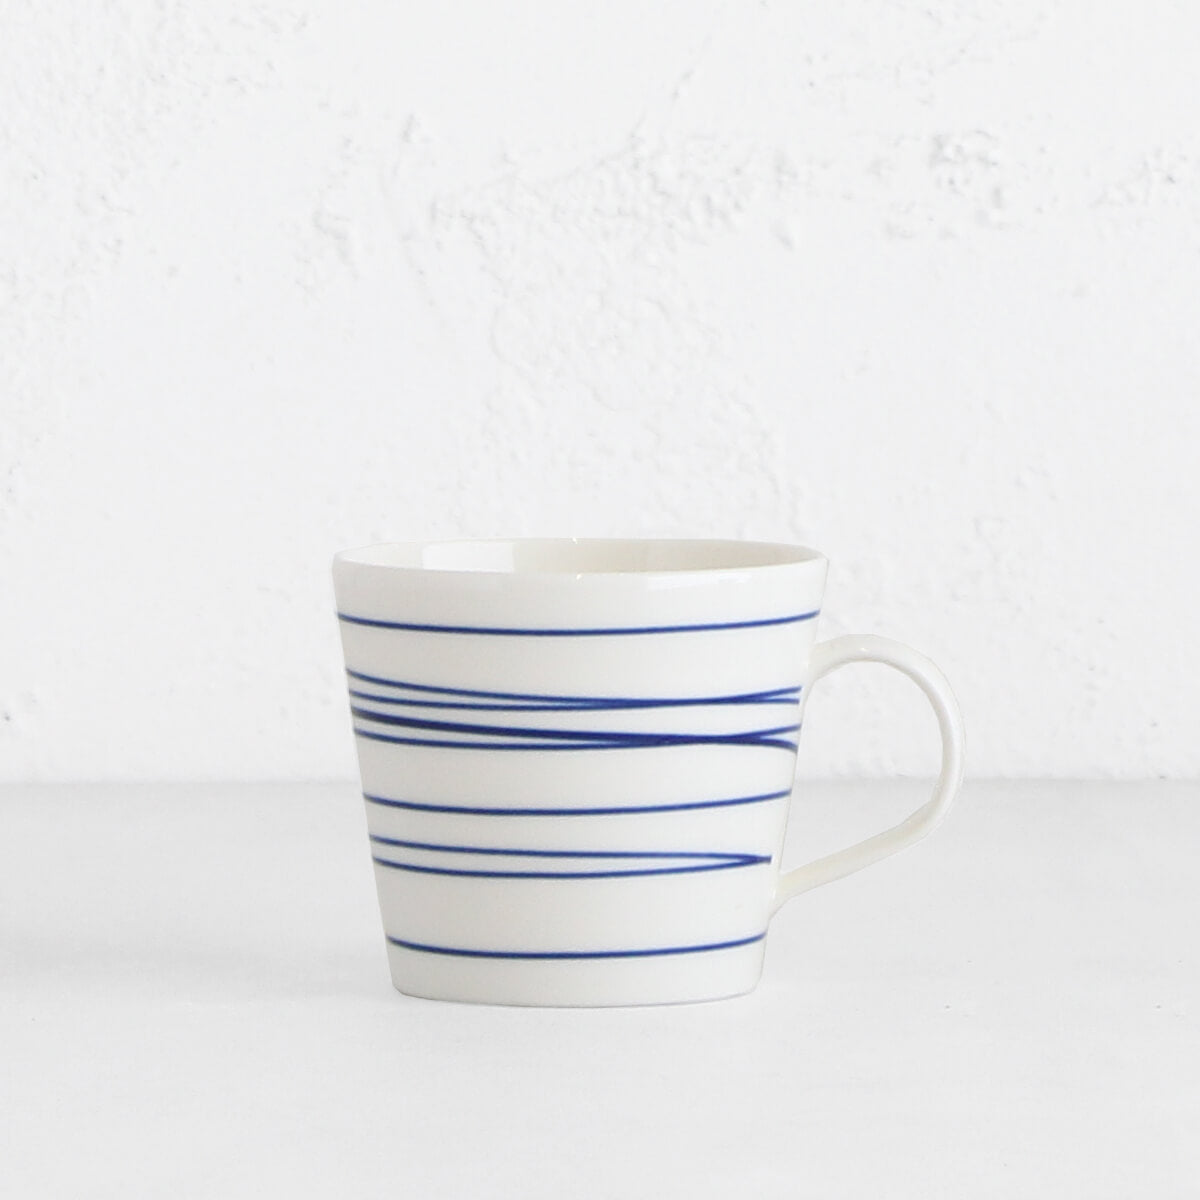 ROYAL DOULTON  | MUG  |  BLUE STRIPE ON WHITE